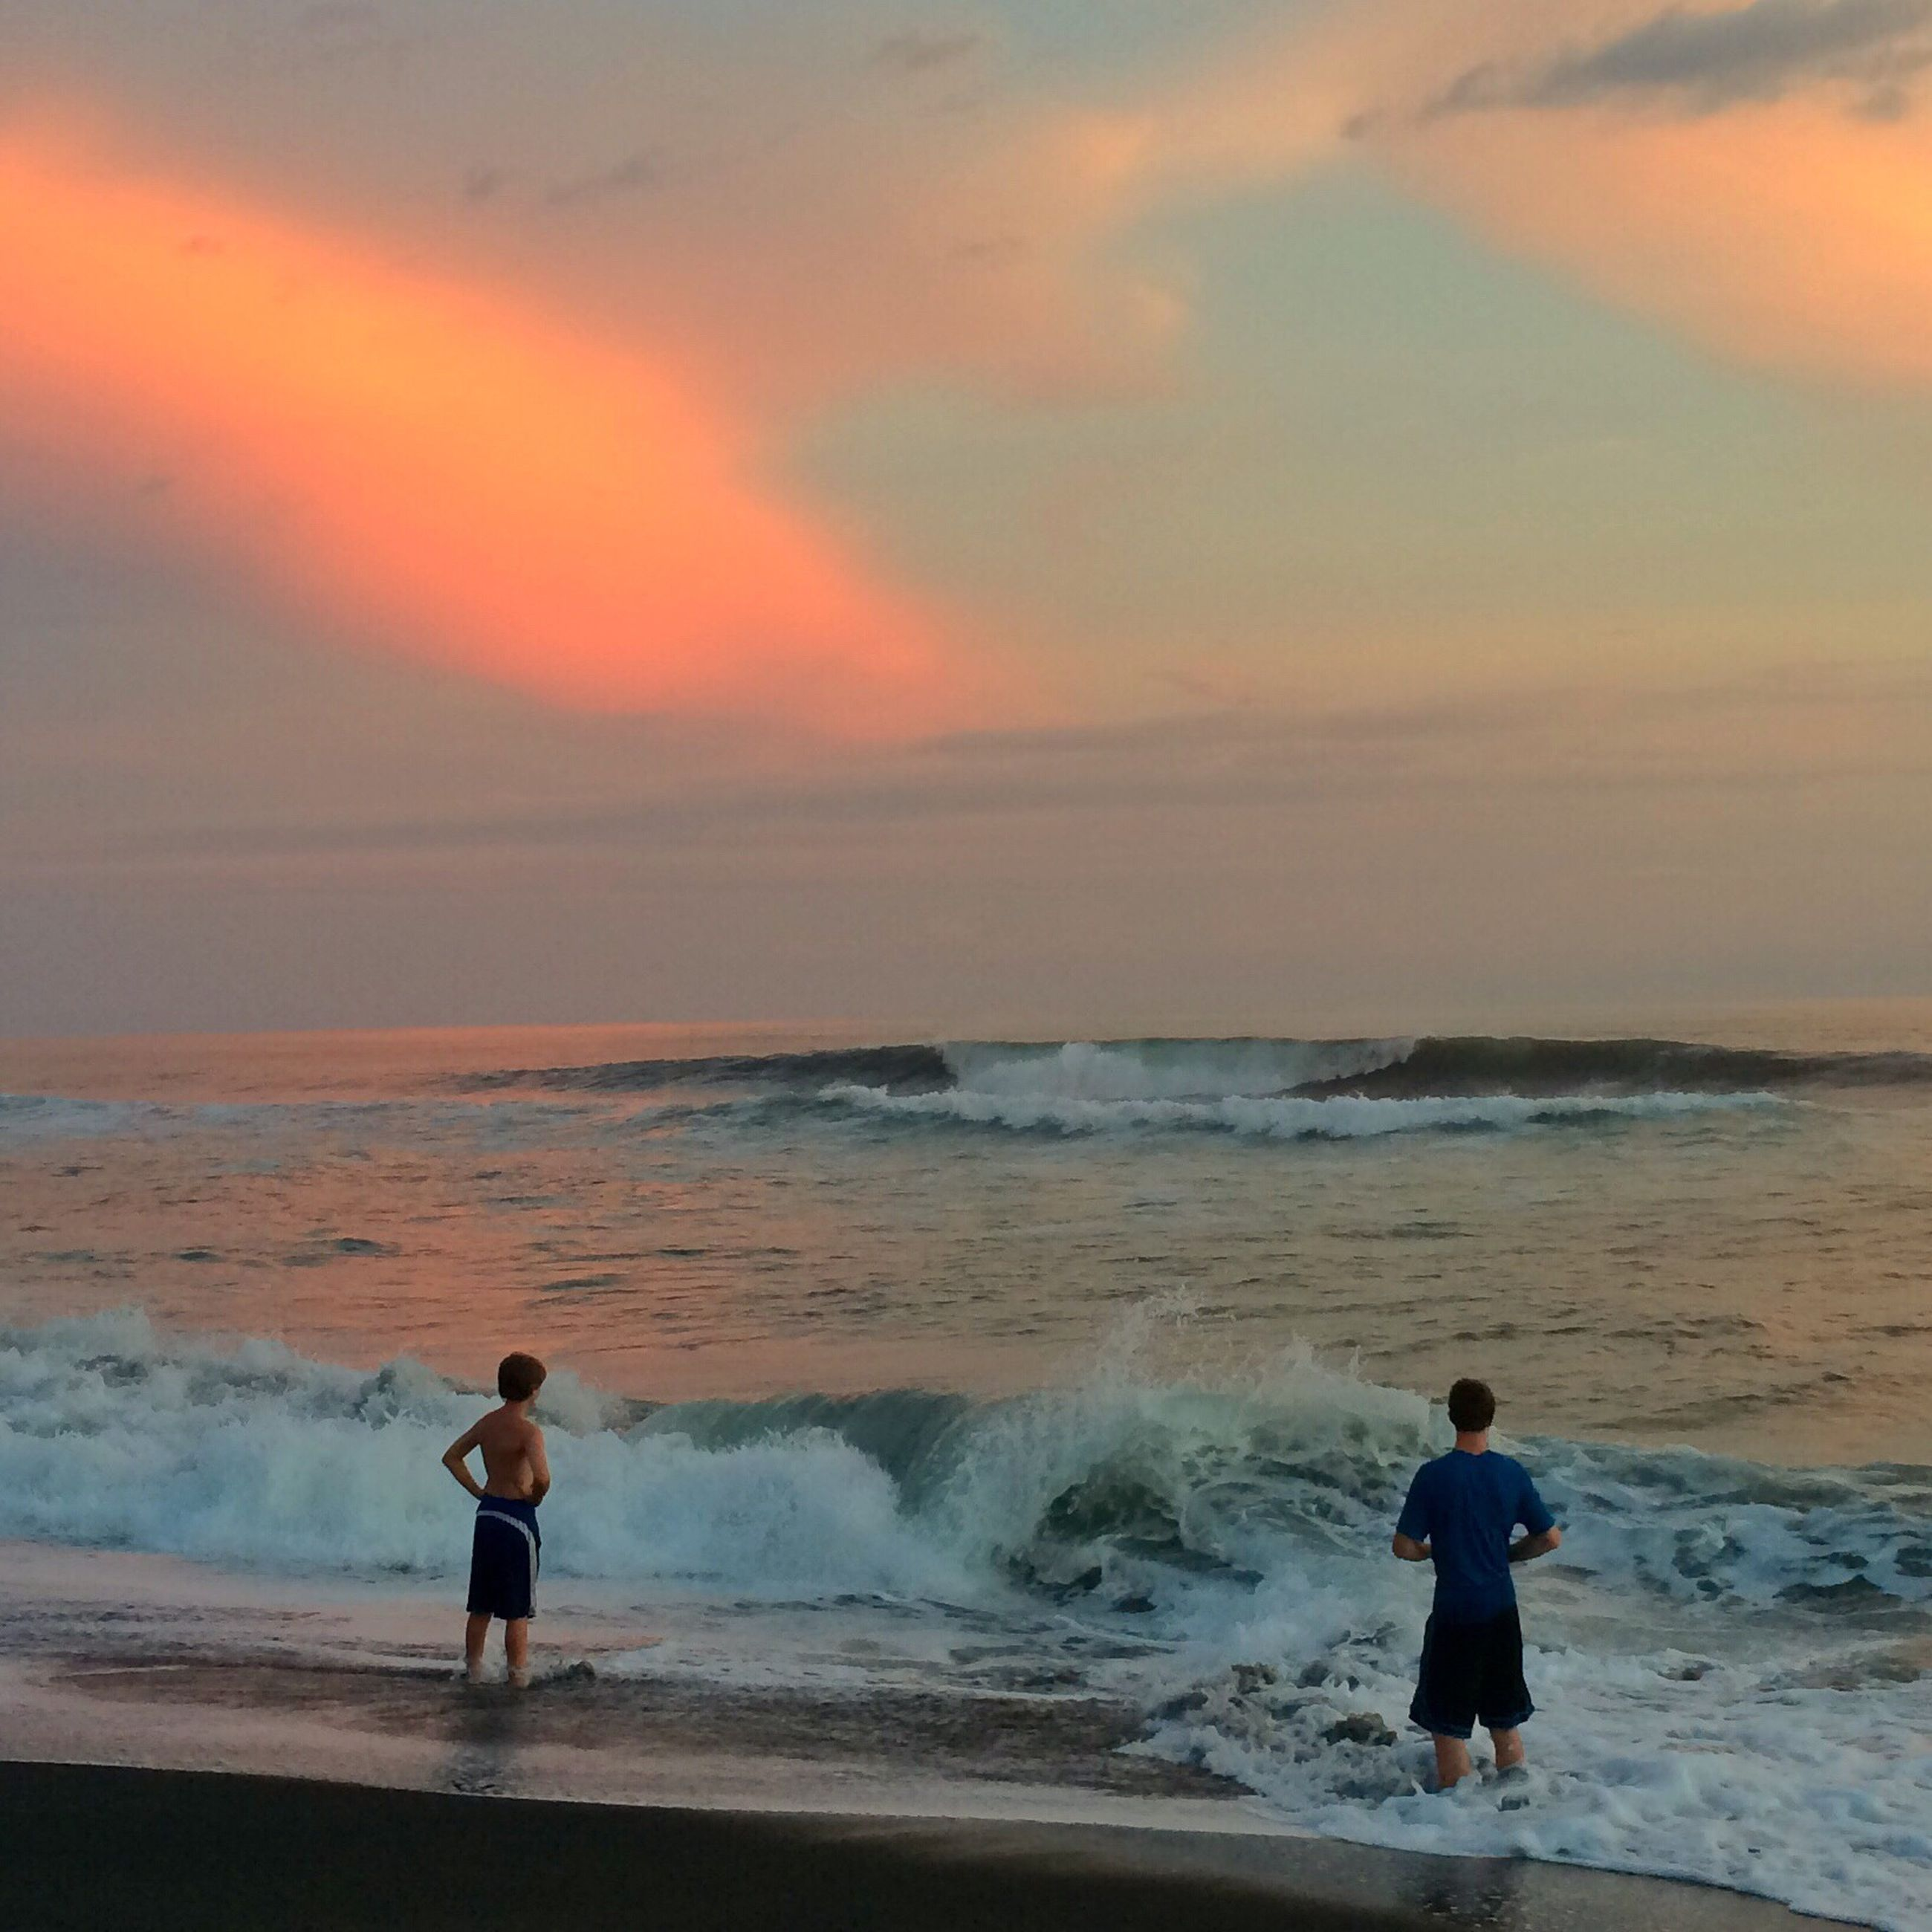 water, sea, beach, full length, lifestyles, leisure activity, shore, horizon over water, standing, rear view, sky, childhood, beauty in nature, scenics, vacations, sunset, casual clothing, boys